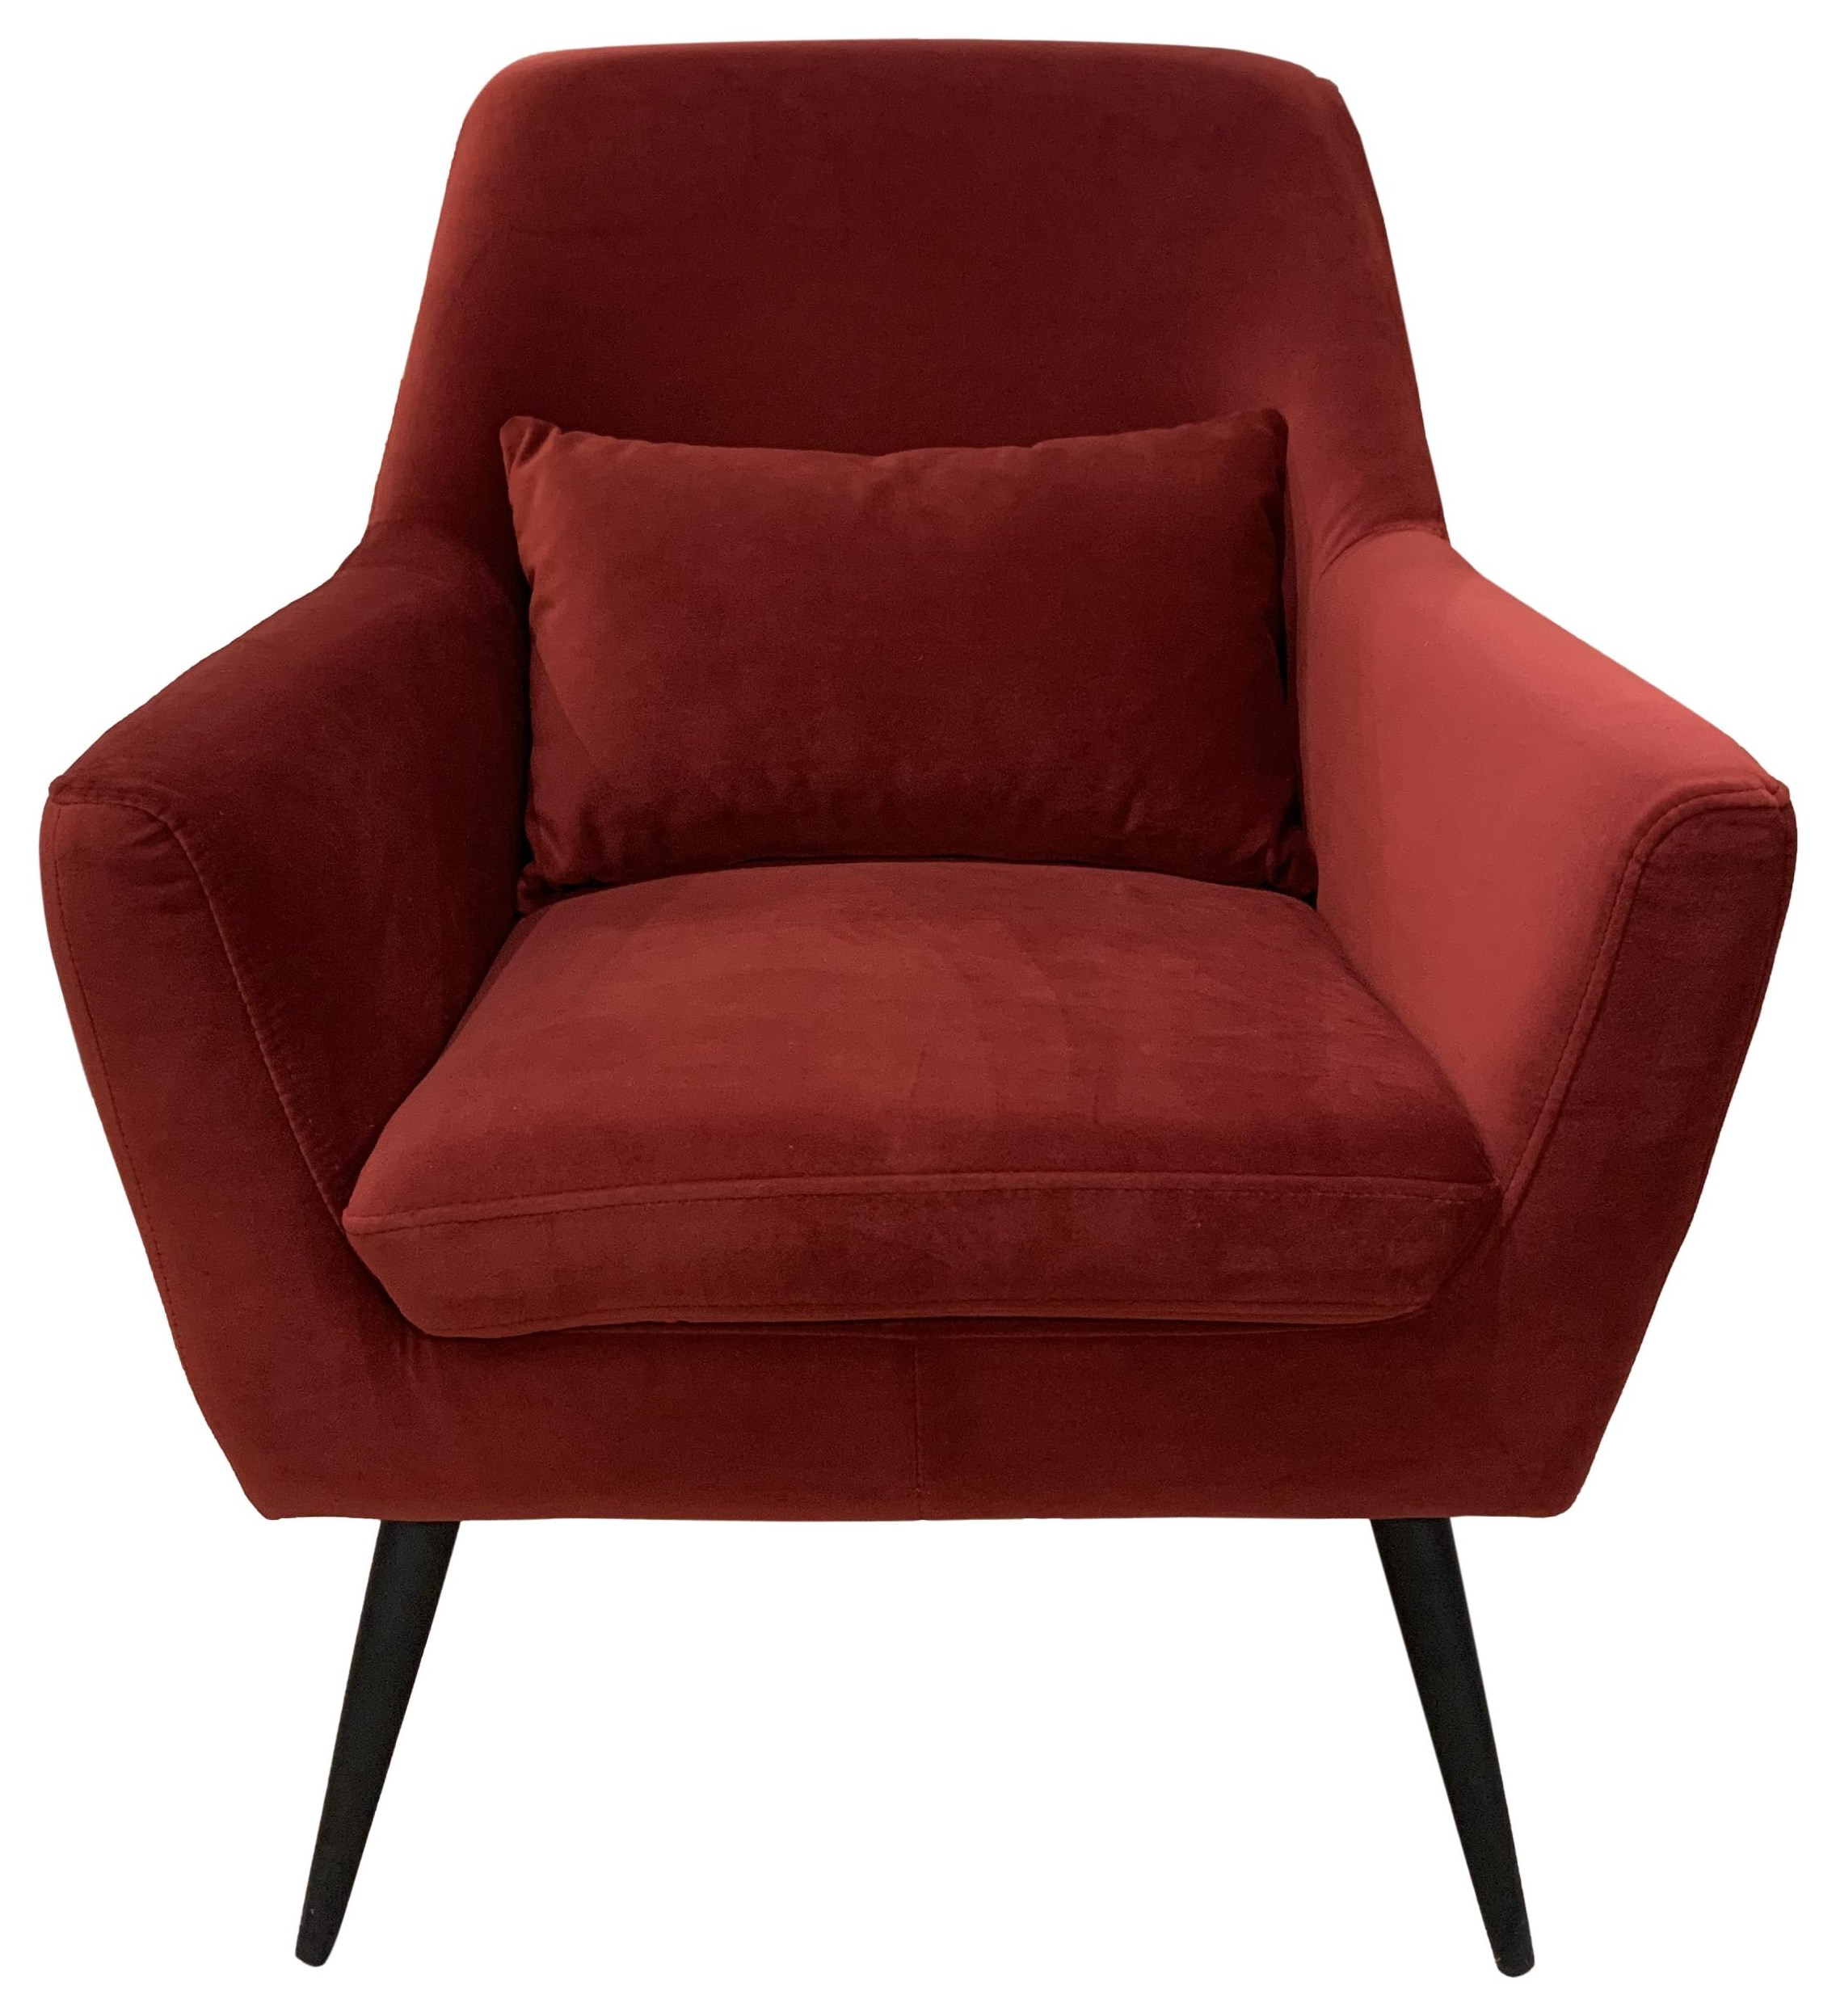 York Accent Chair by Amalfi Home Furniture at HomeWorld Furniture